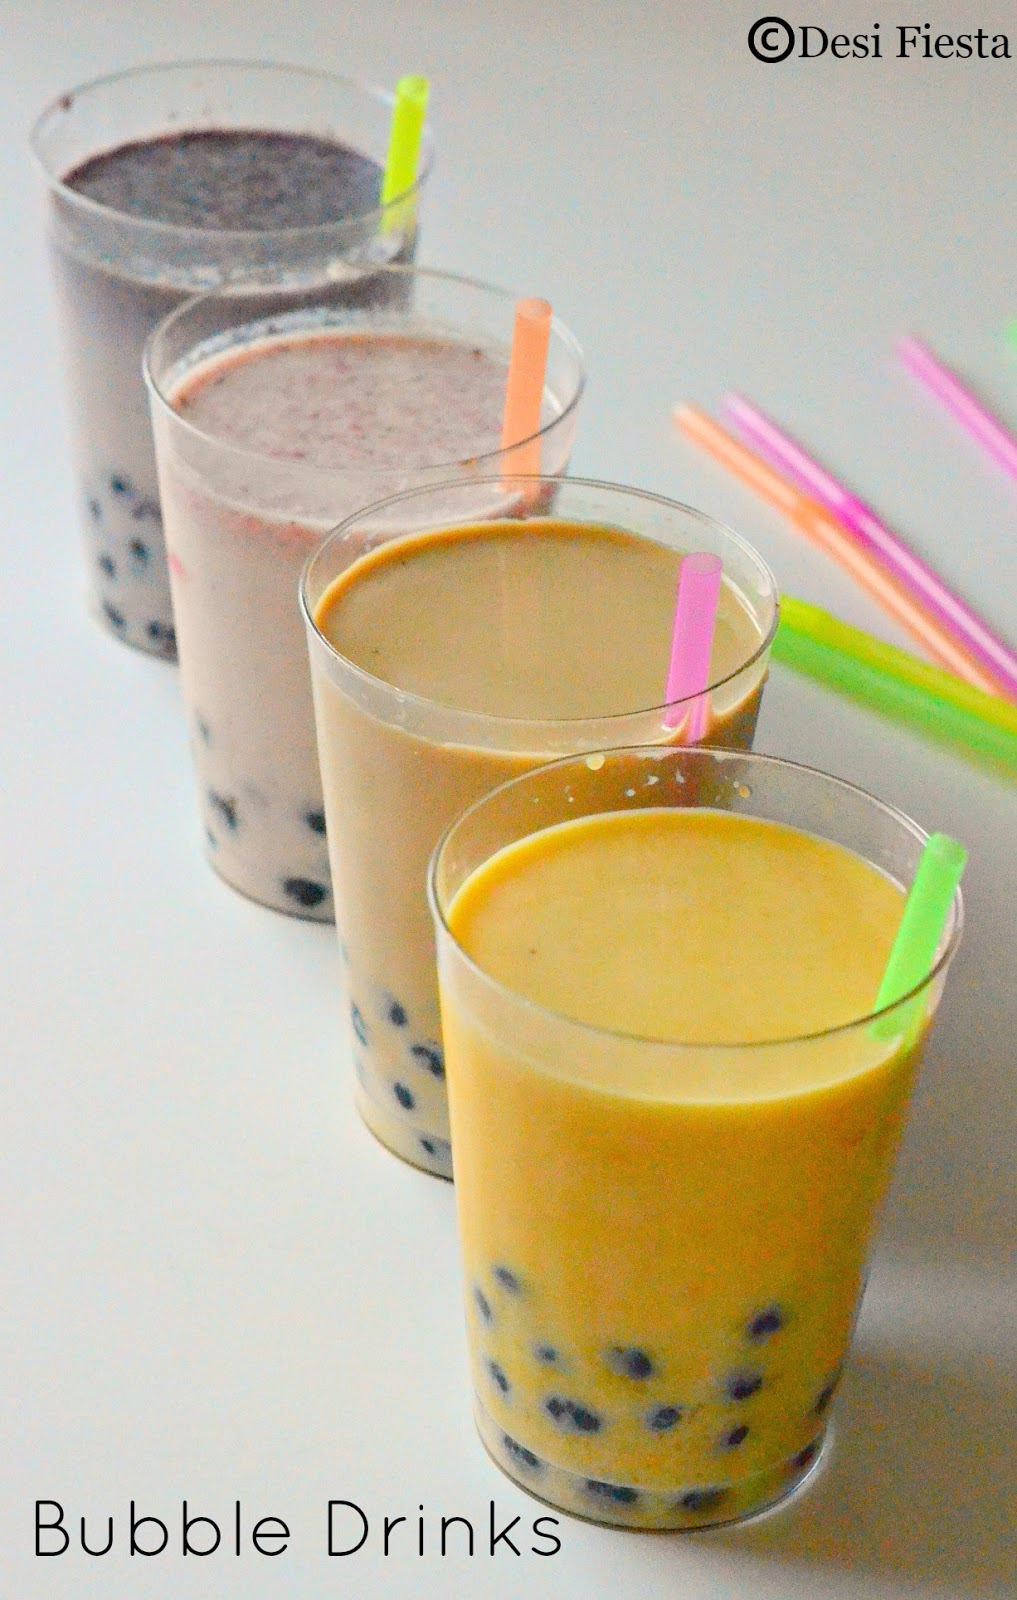 ... Bubble Drinks | Fruit Bubble Tea Recipe |Boba drinks ~ Vietnamese